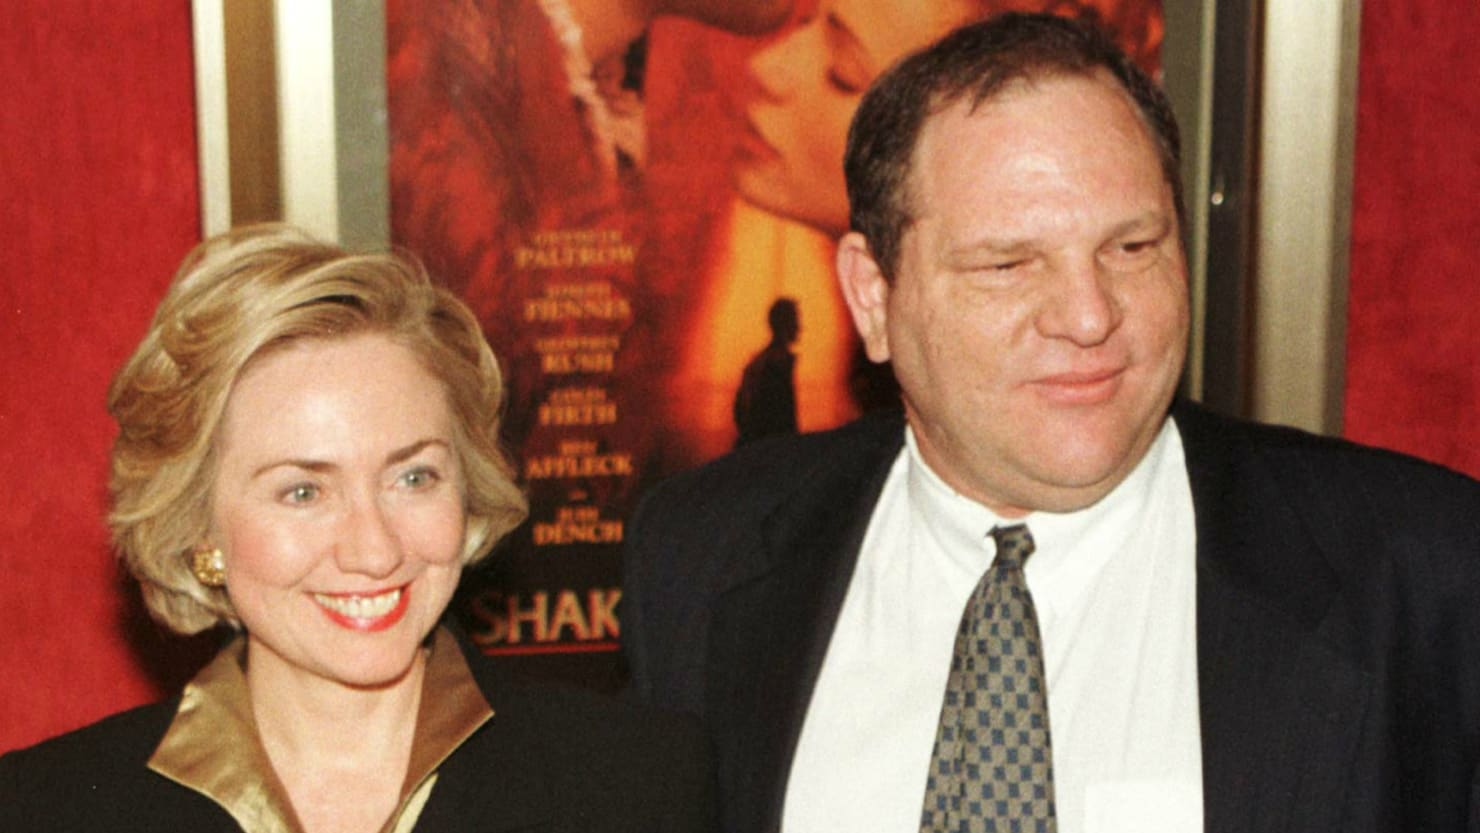 f1521600 Hillary Clinton Says She'll Donate Harvey Weinstein's Contributions